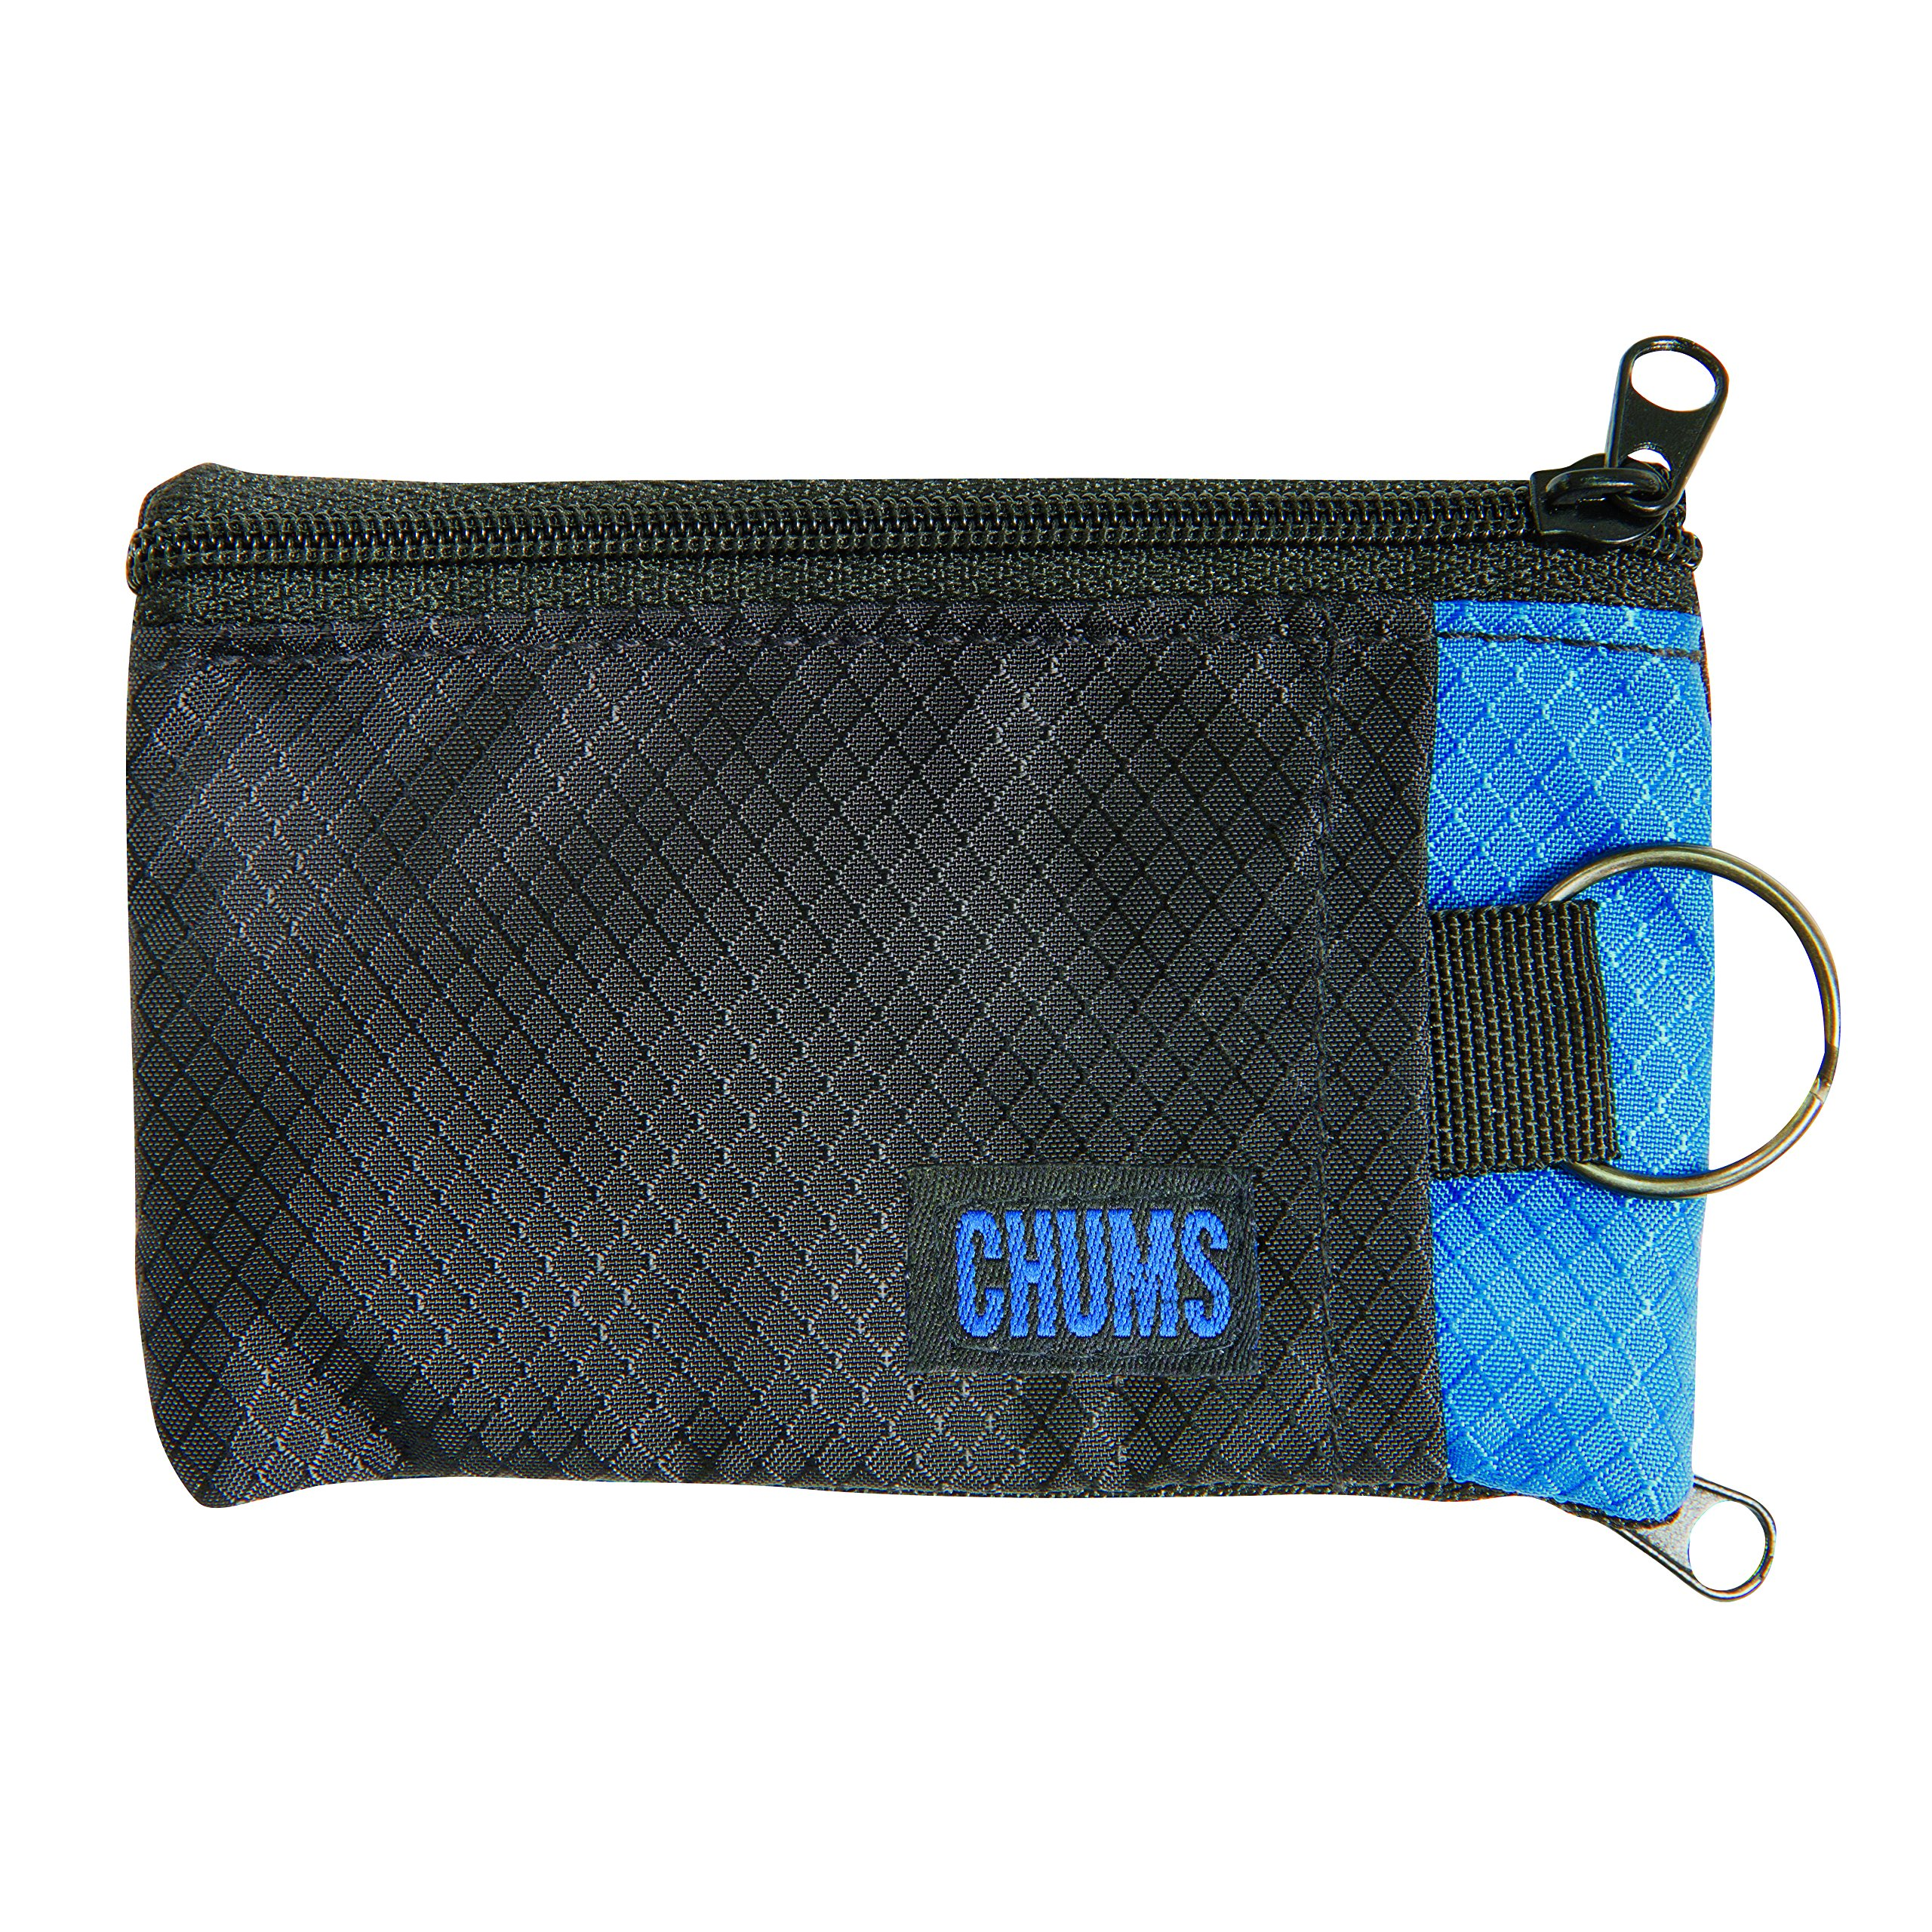 Chums Surfshort Wallet Ocean Blue by Chums (Image #2)